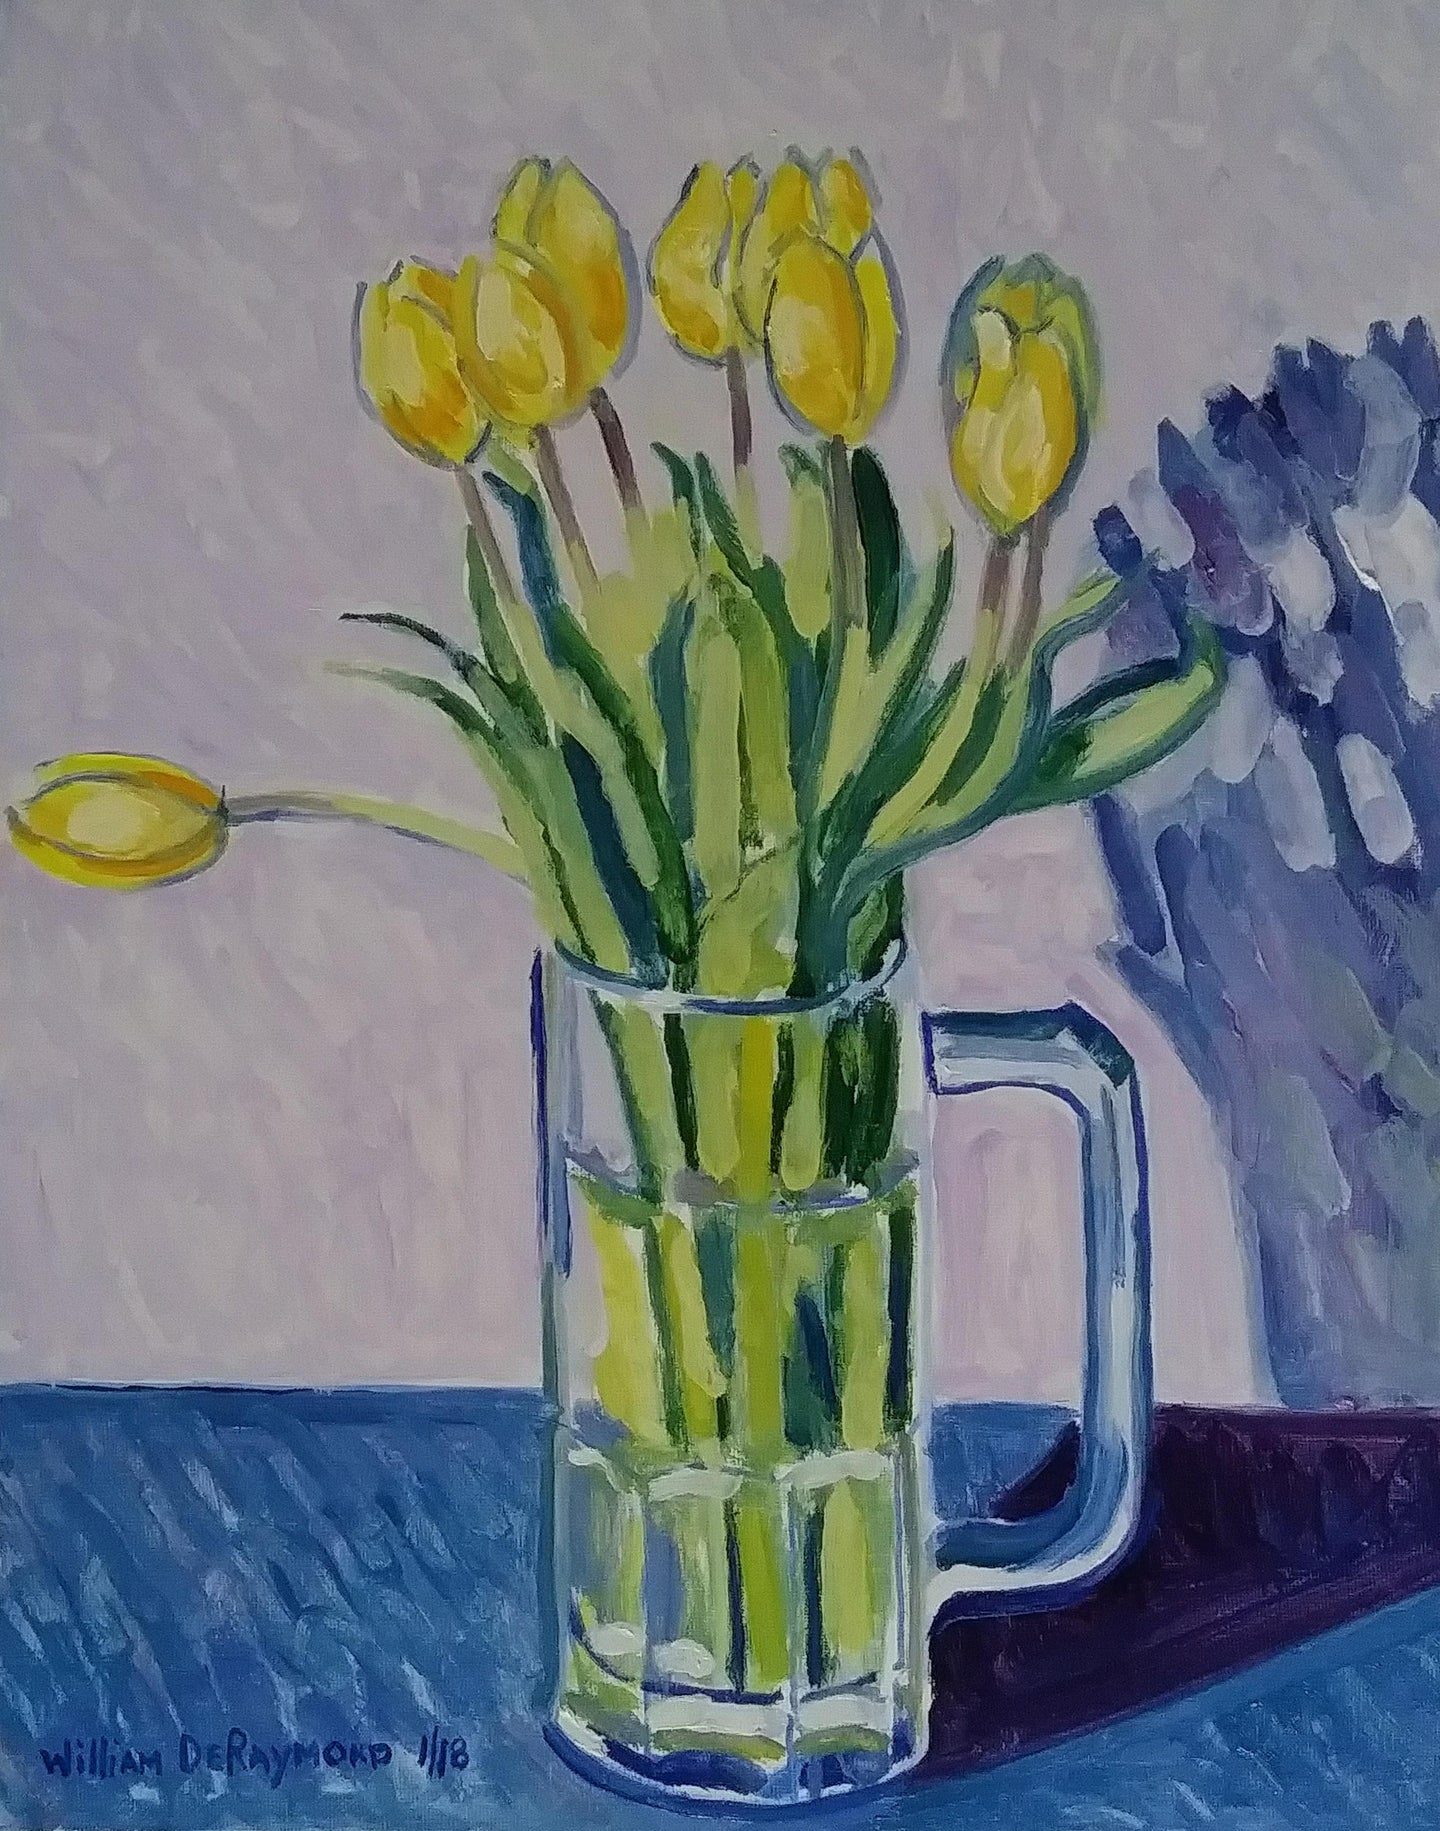 #fineart #painting #art composition with yellow tulips, 16